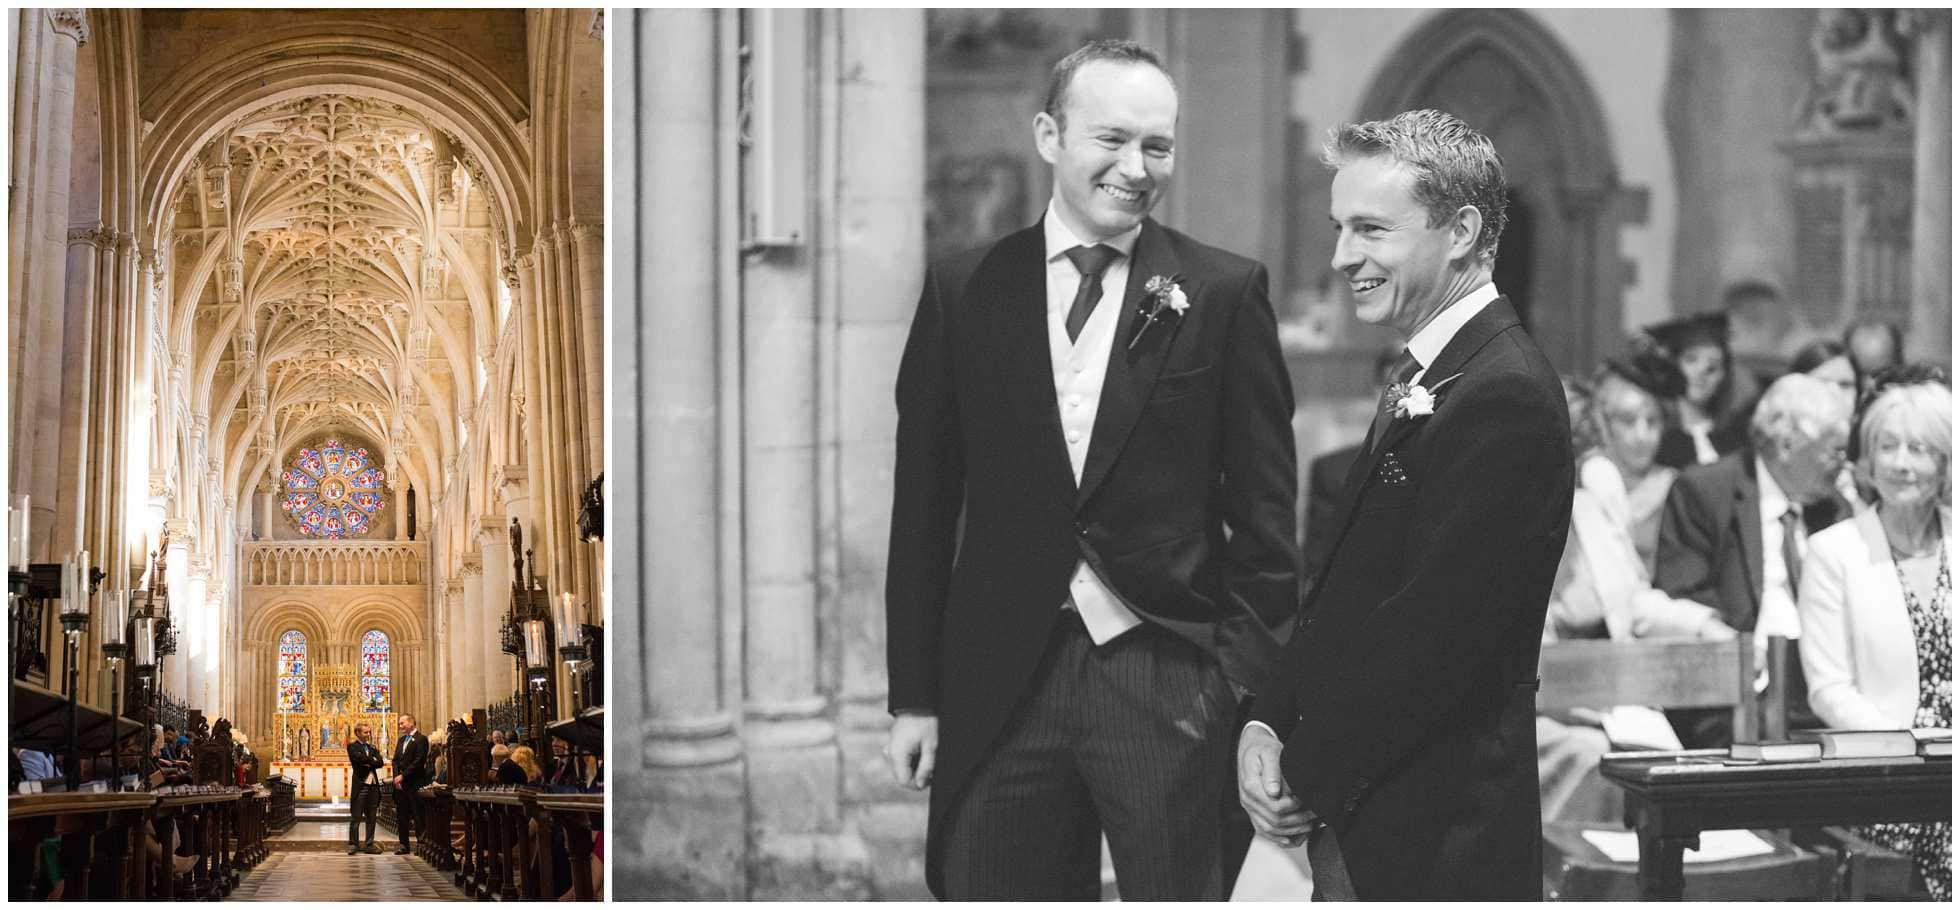 Groom and best man Christ Church College Cathedral Wedding